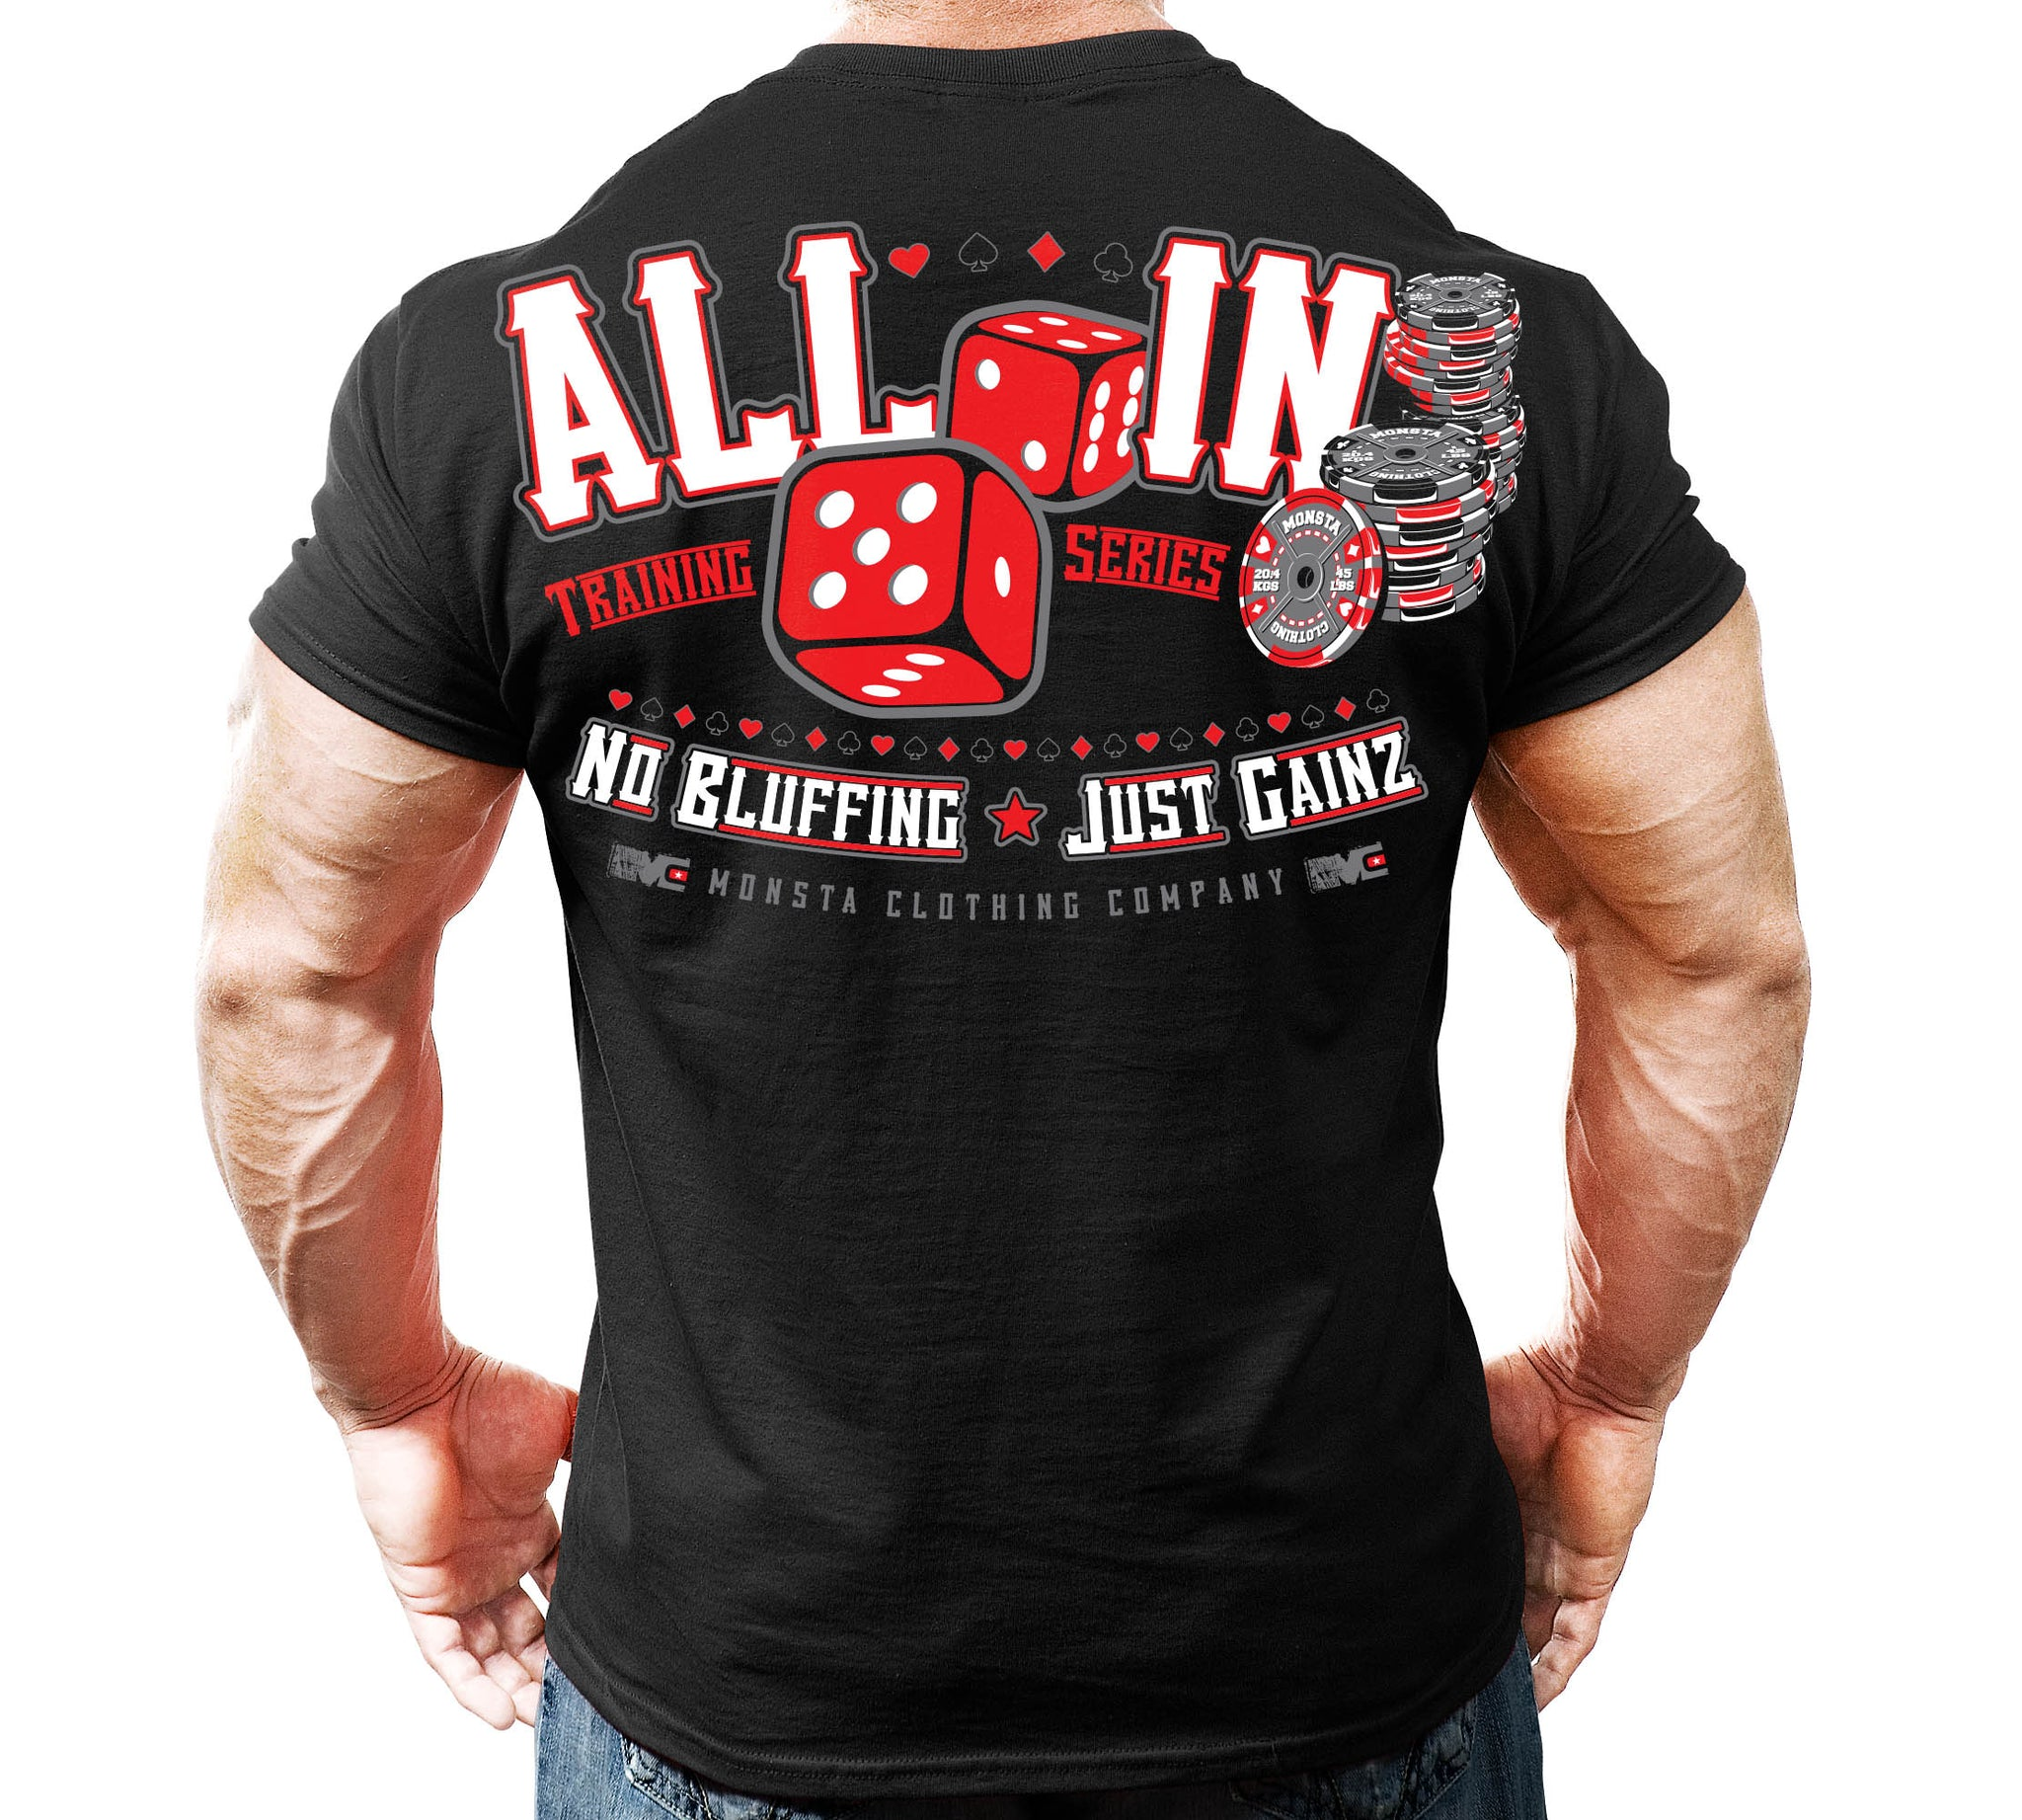 MONSTA: ALL IN: No Bluffing – Just Gainz-297 - Monsta Clothing Australia